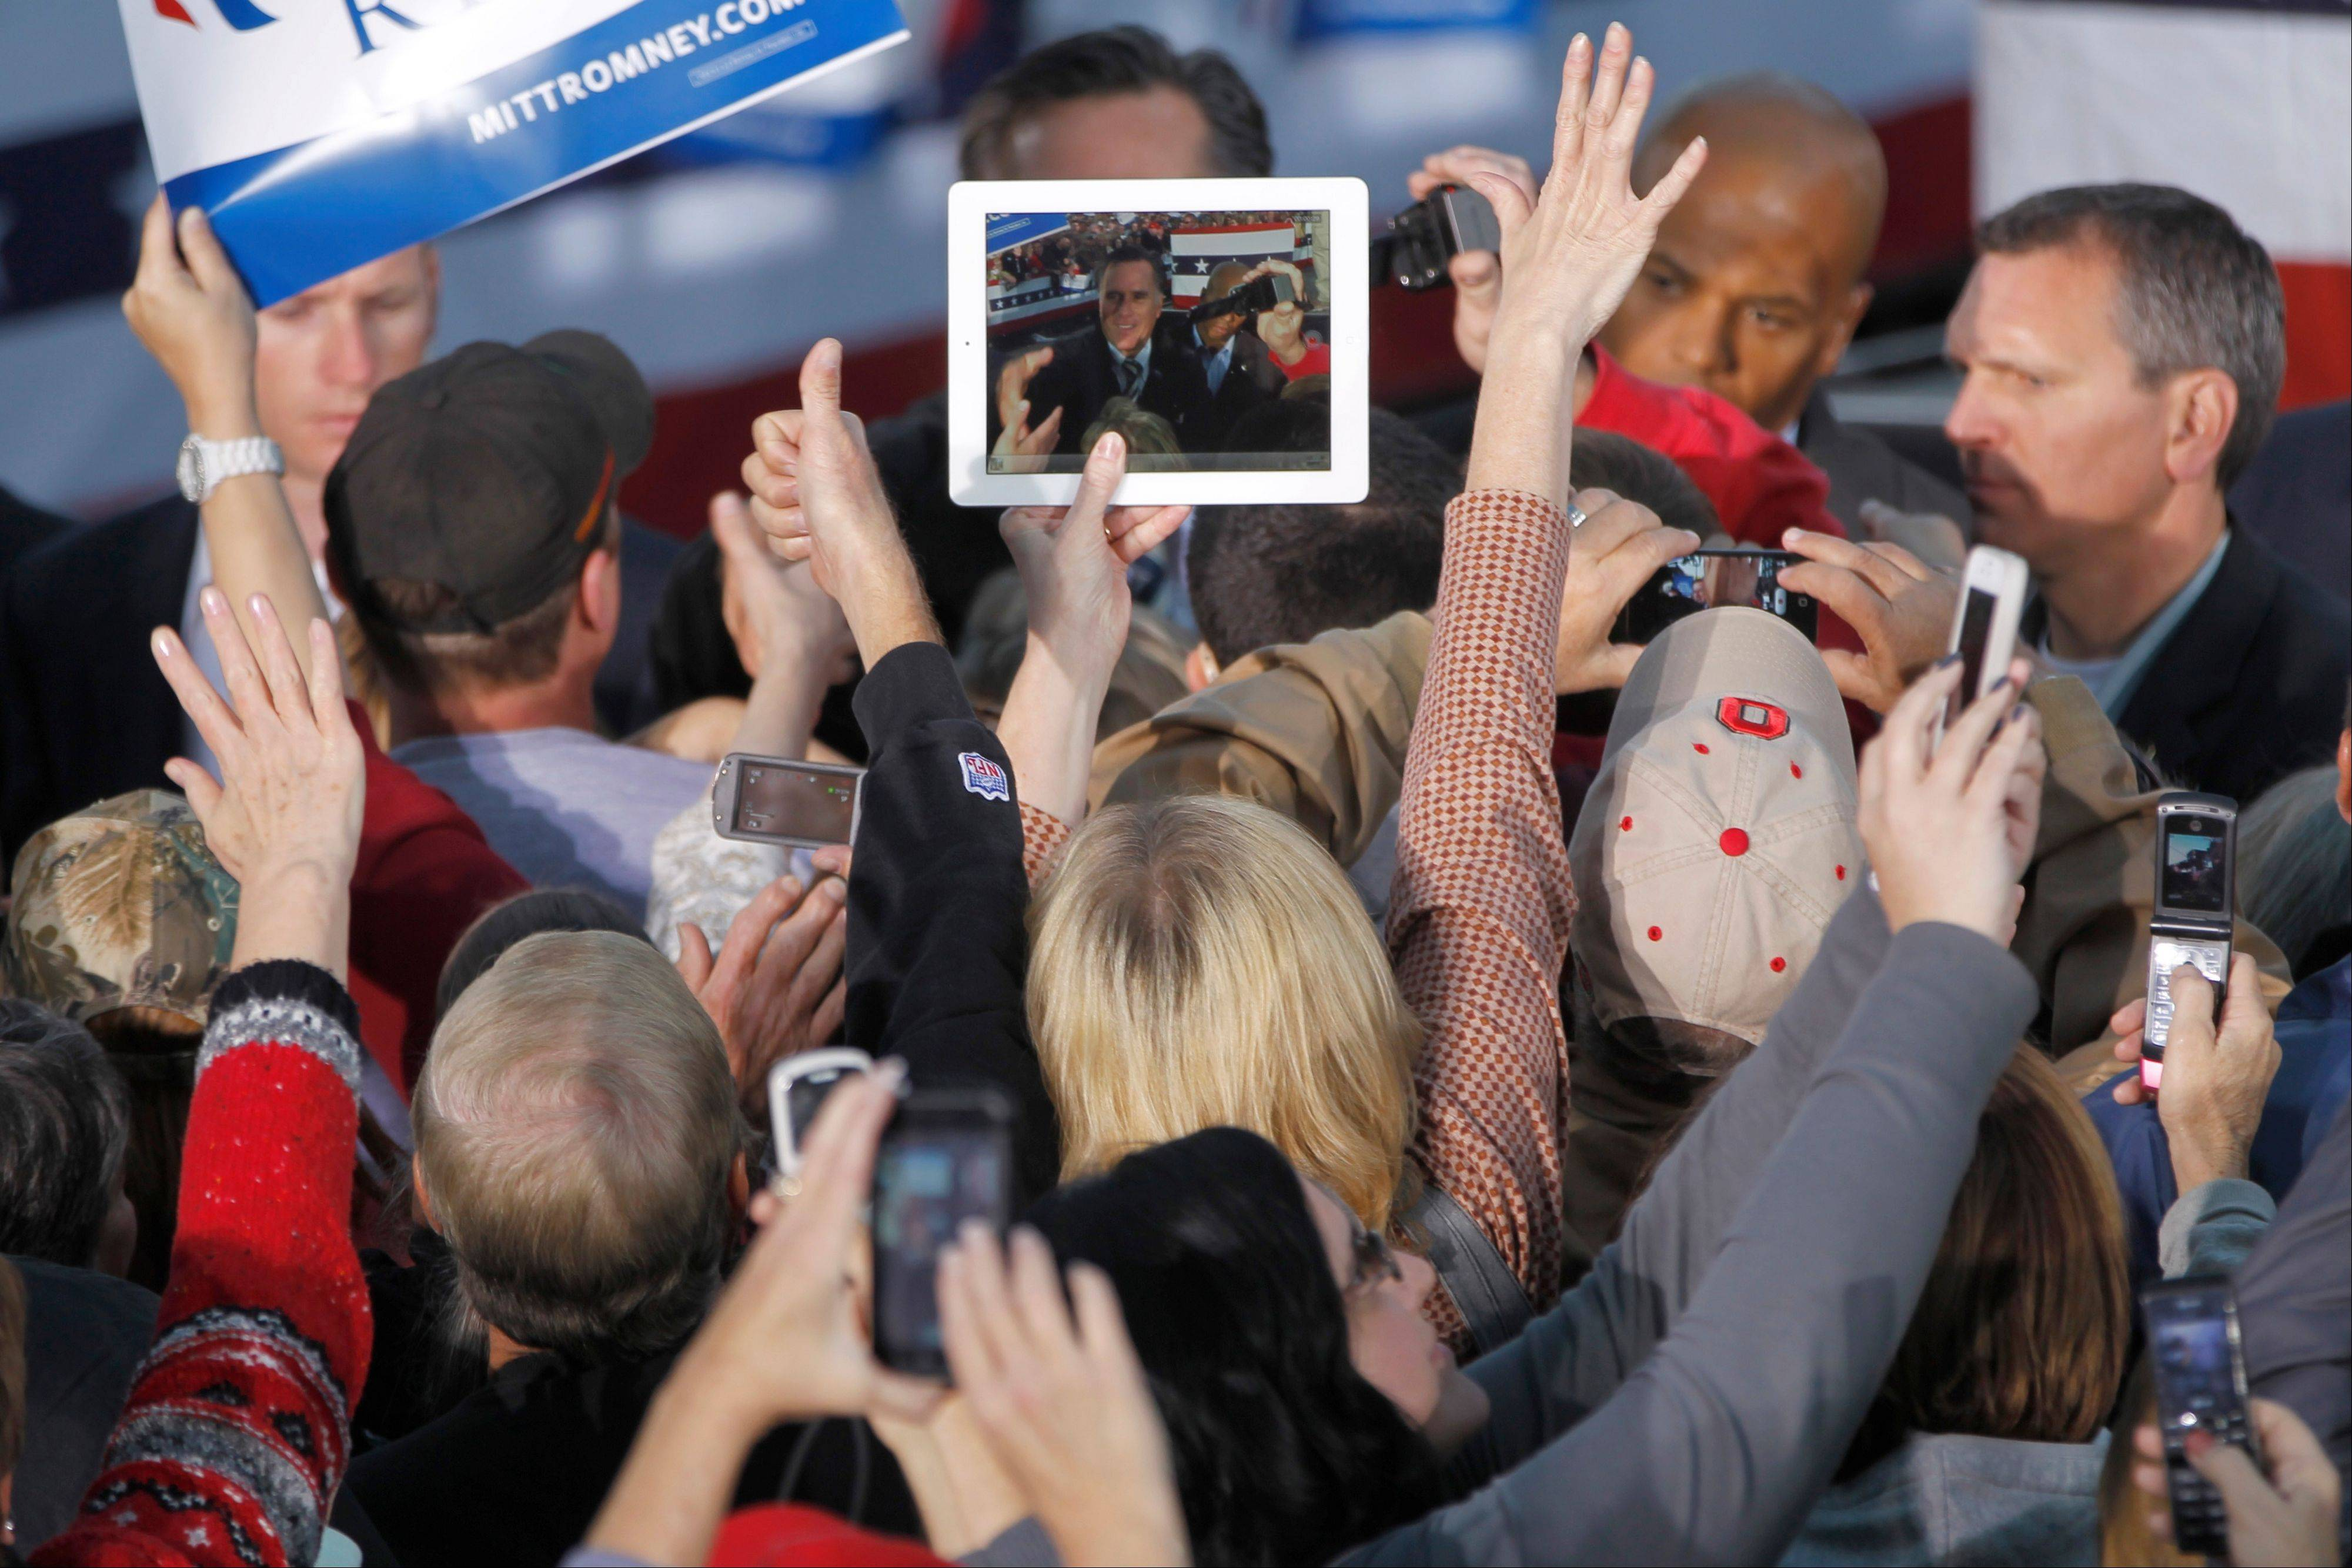 A supporter takes a picture with an iPad Friday of Republican presidential candidate and former Massachusetts Gov. Mitt Romney as he greets supporters at a campaign event in Lancaster, Ohio.